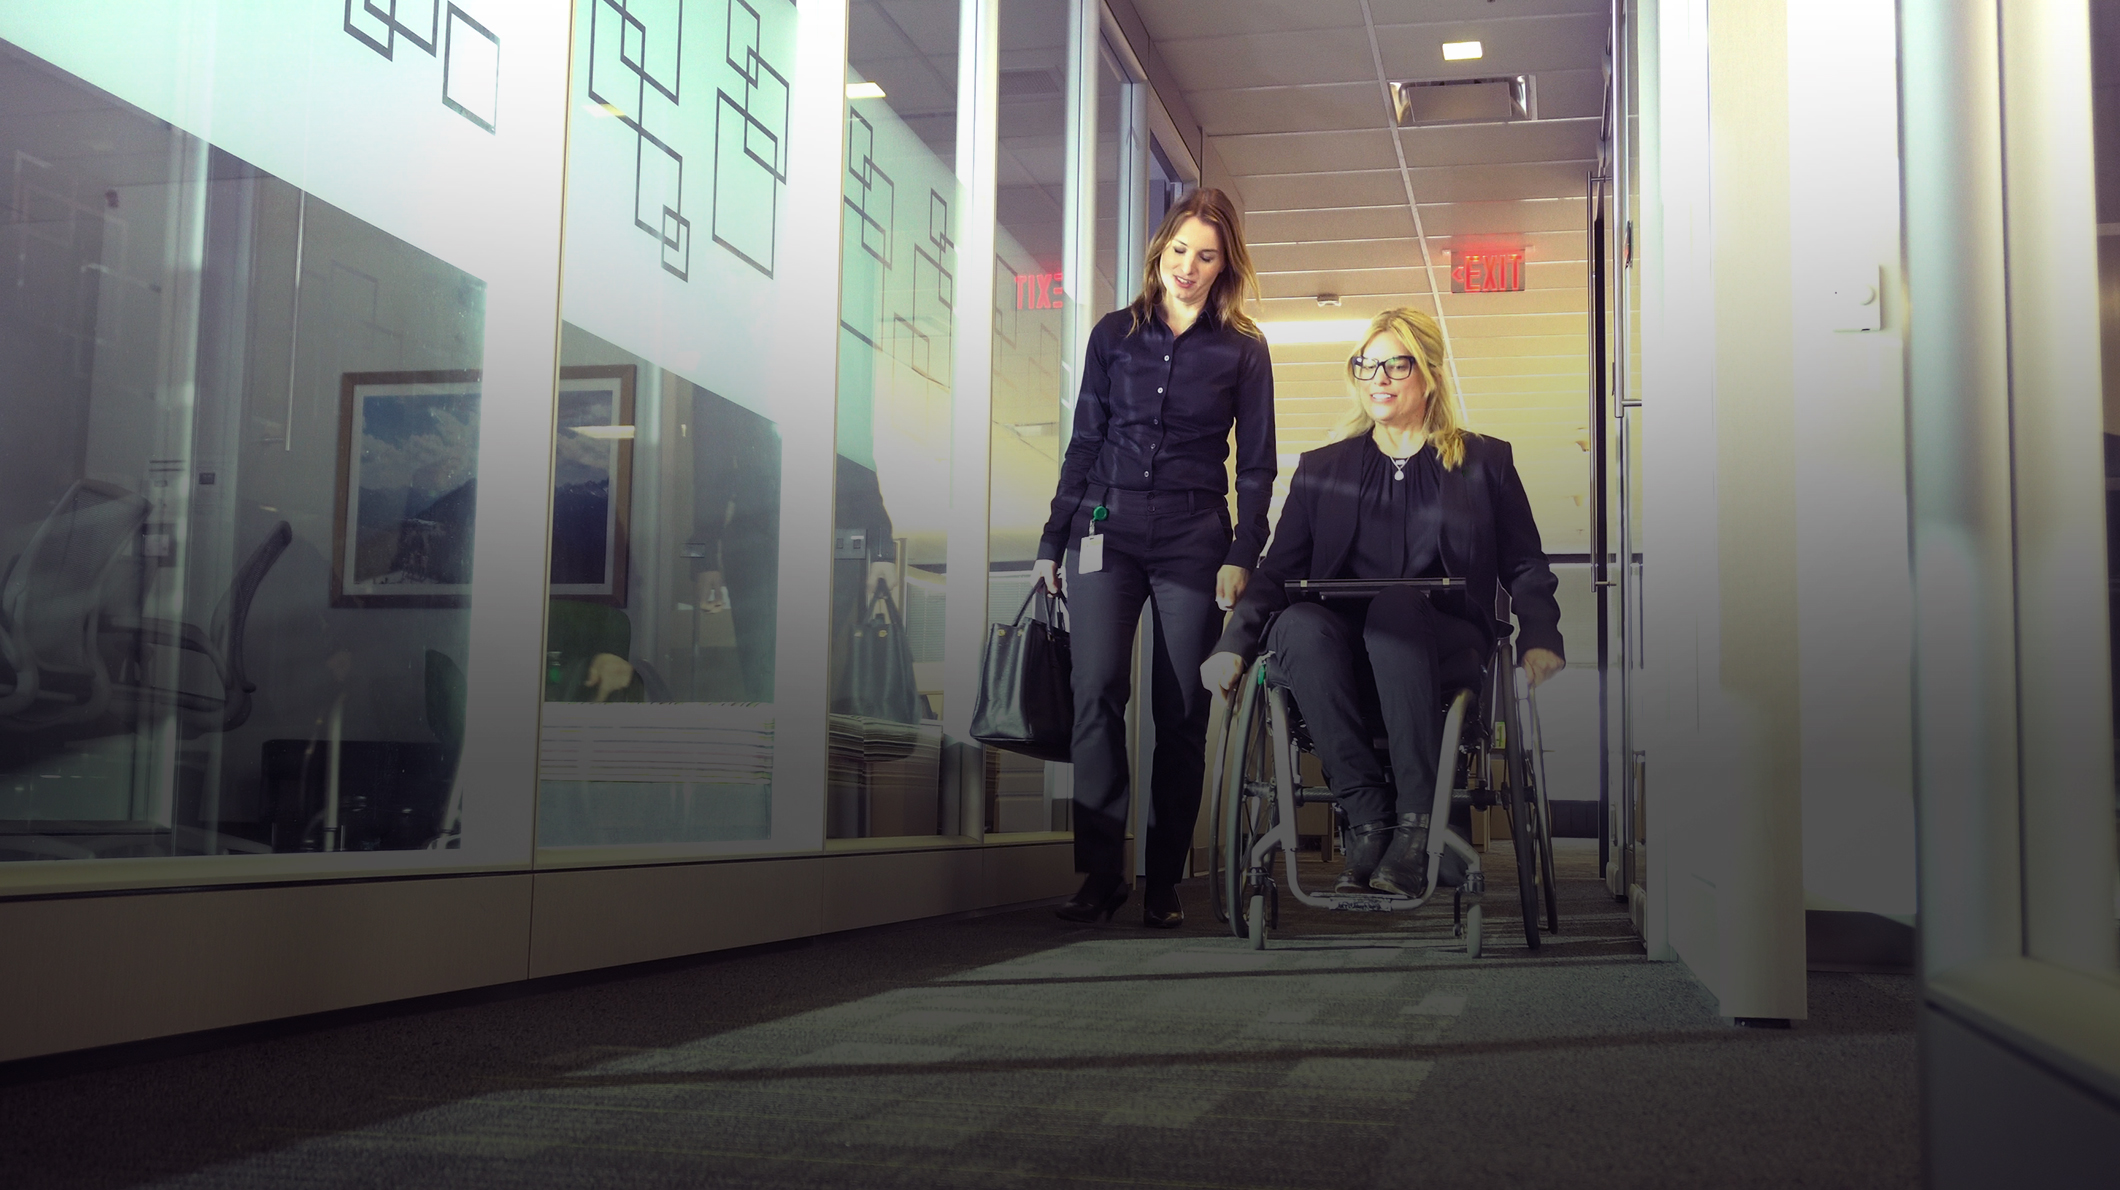 A woman walks alongside a woman in a wheelchair